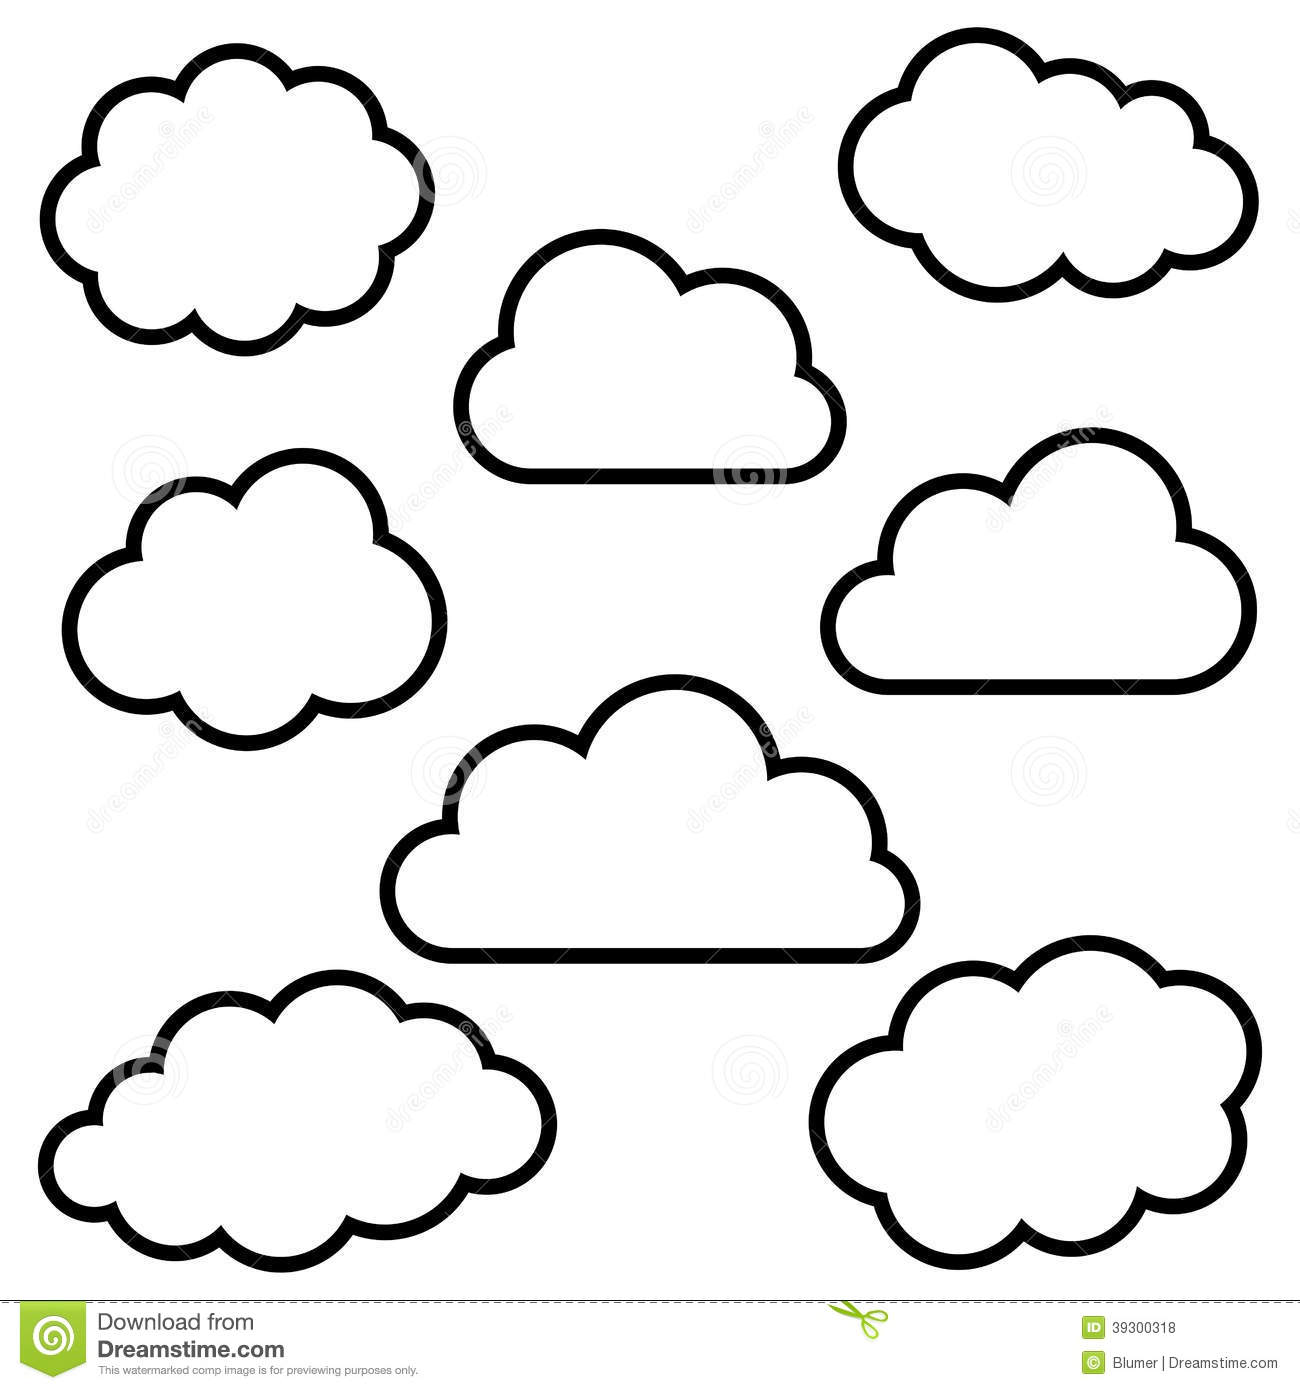 Cloudy clipart many cloud. Sky x free clip